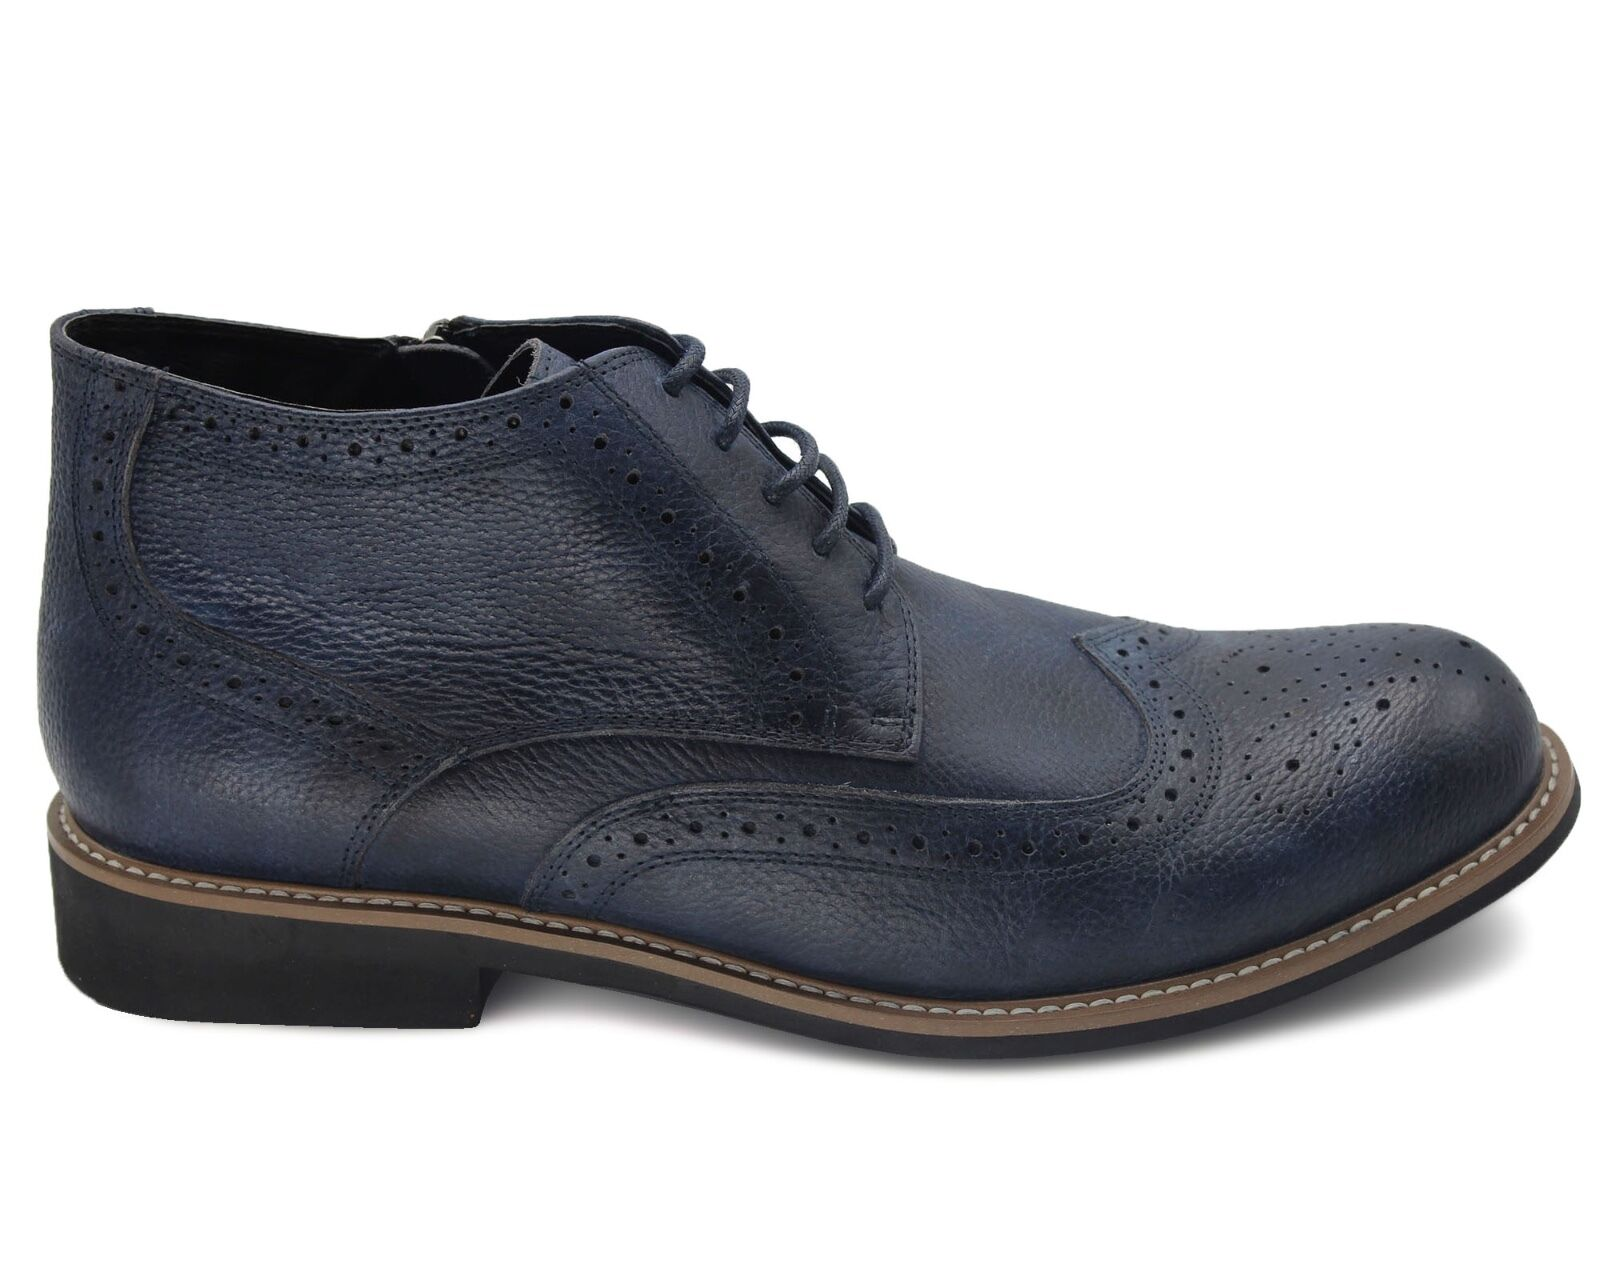 564 UK 6 NEW MENS NAVY NAVY NAVY COMBAT Stiefel REAL LEATHER WINTER FUR LINED MILITARY EU40 e7c27e